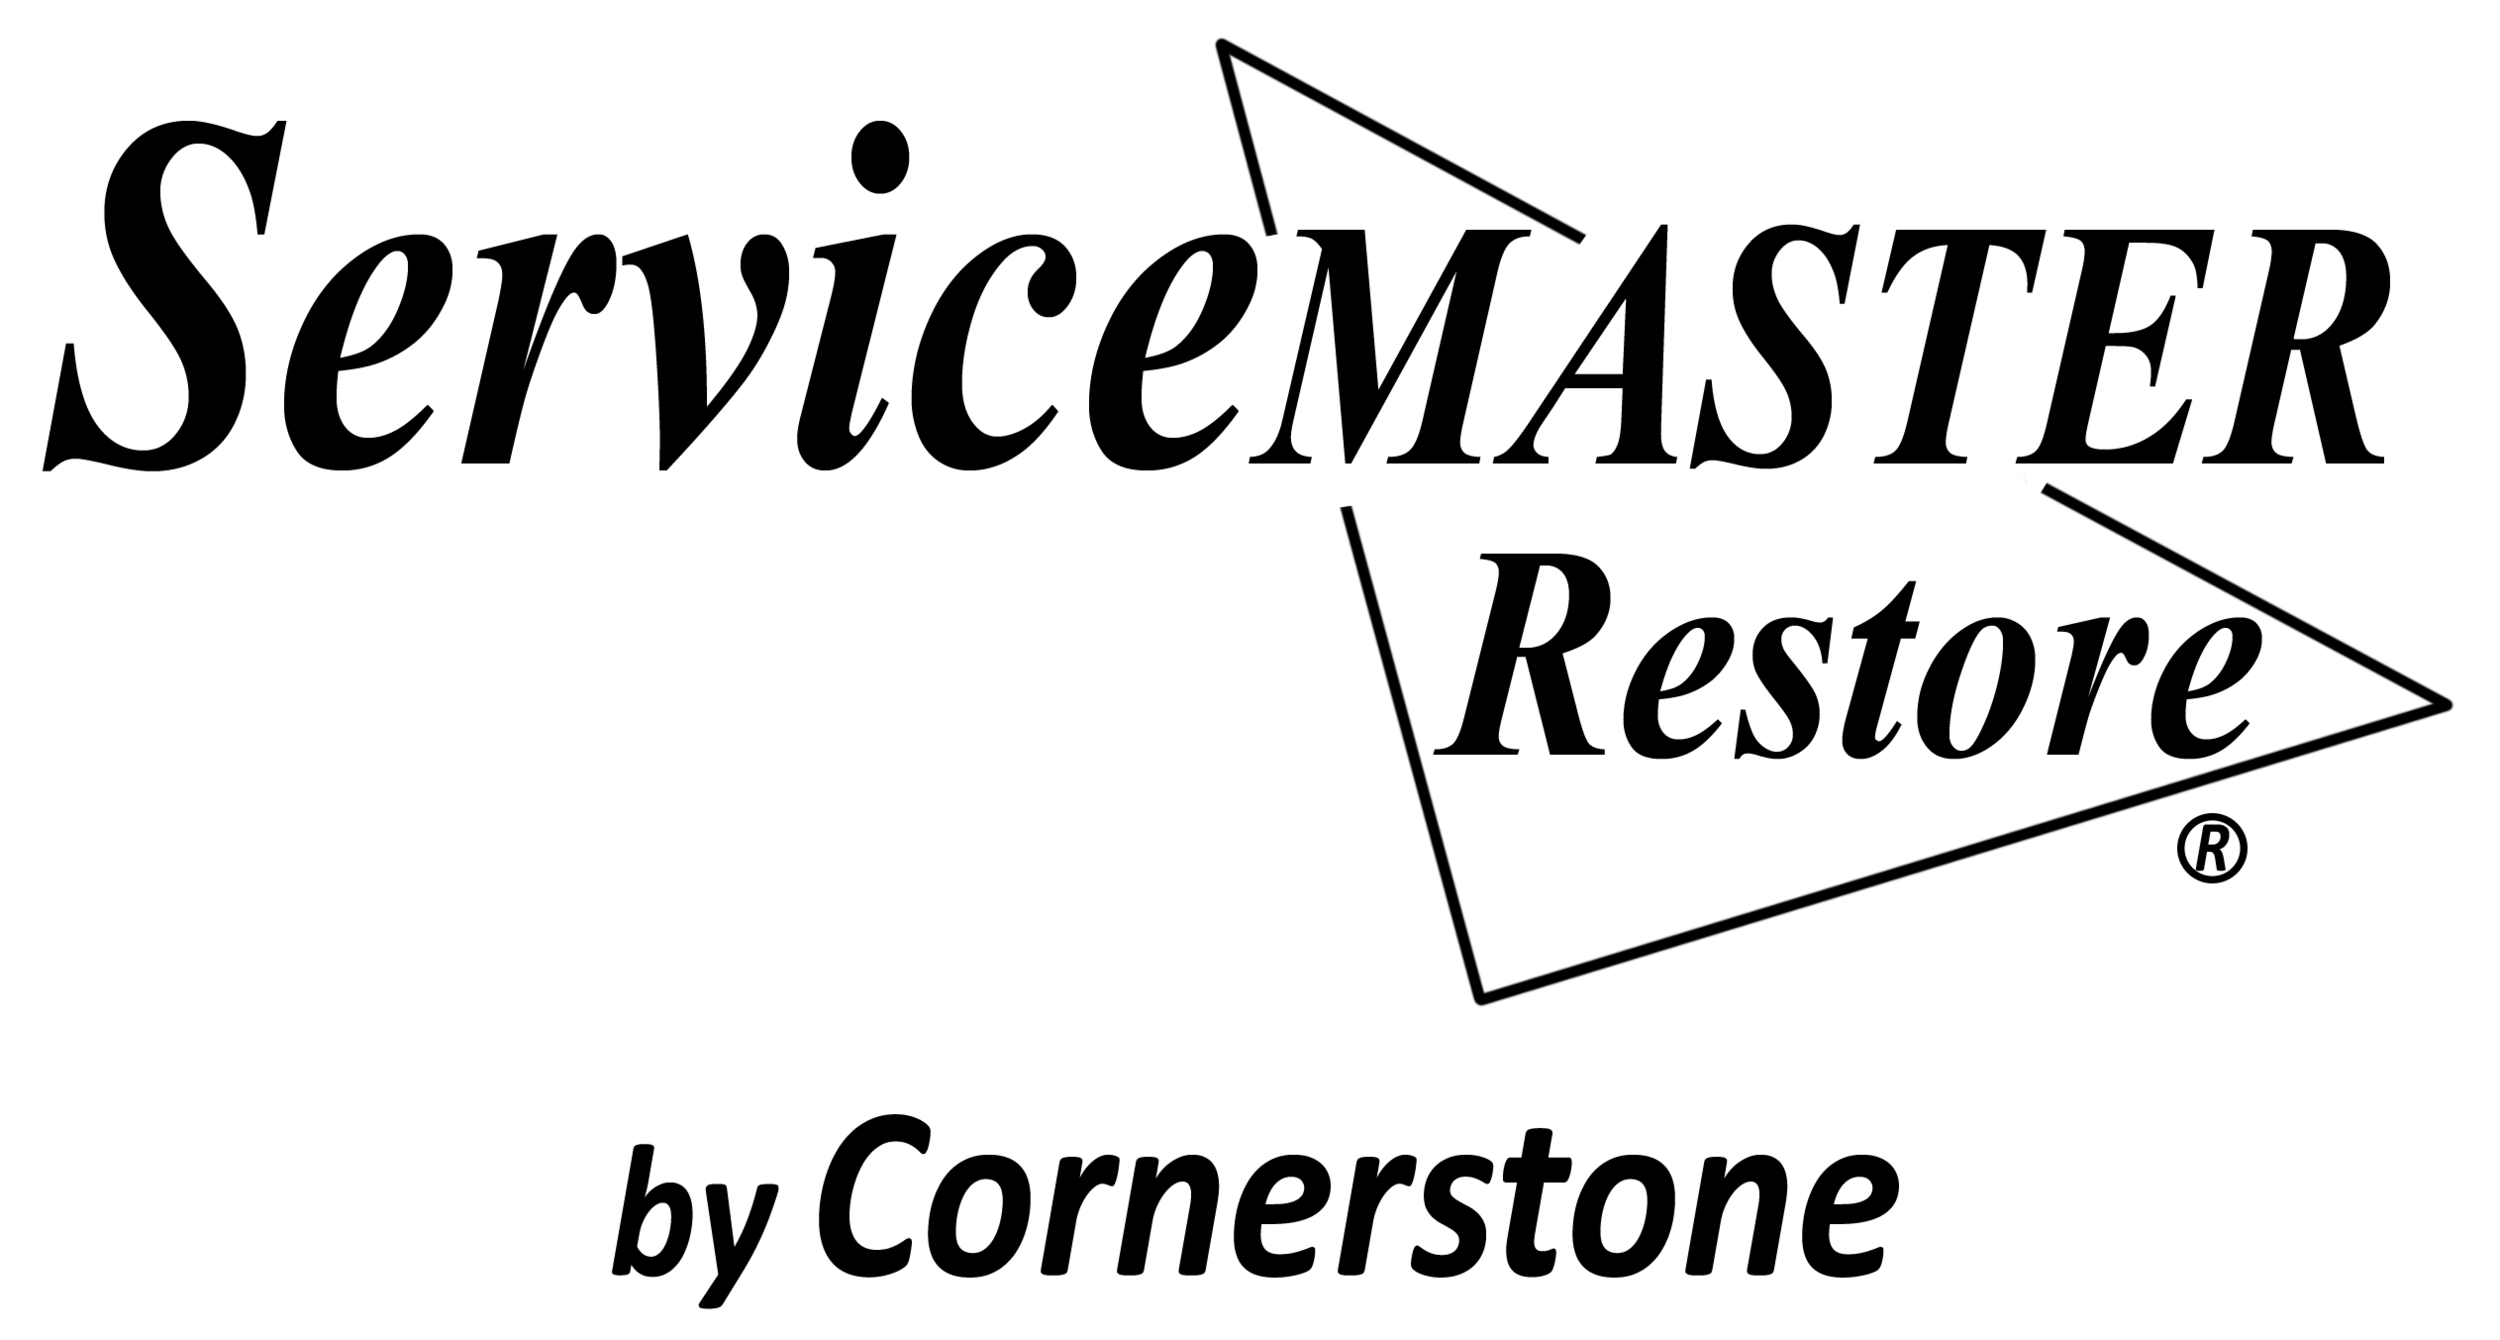 SM (Black - Transparent) (Final) (1).png